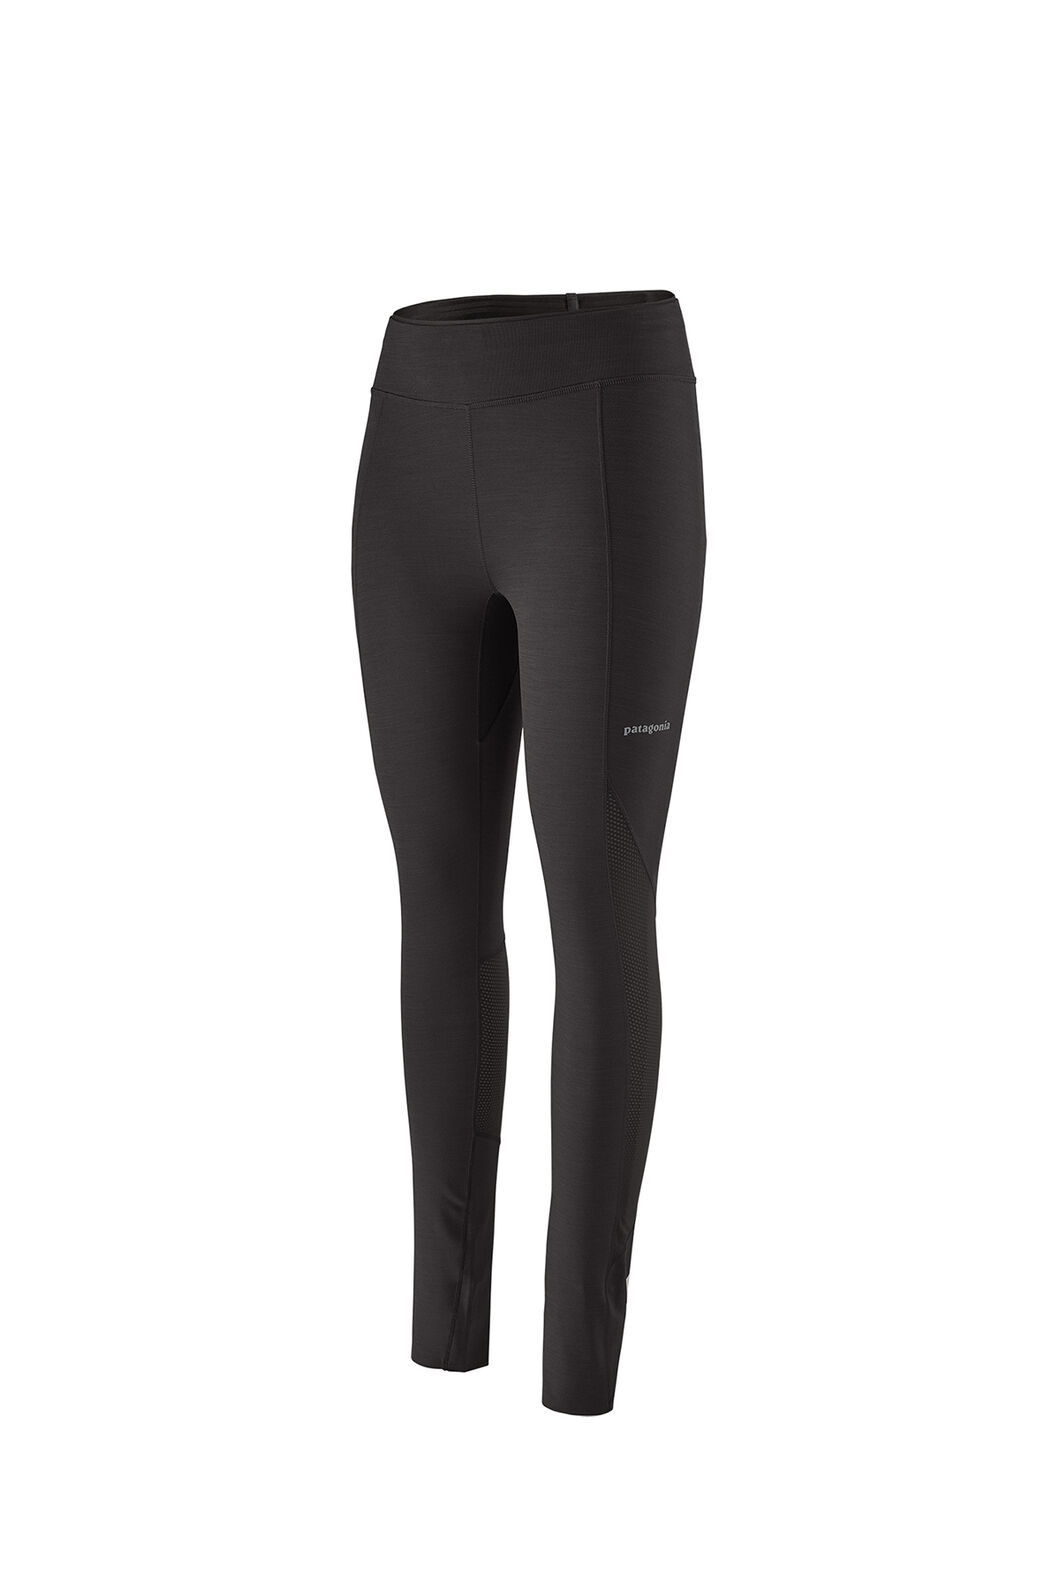 Patagonia Endless Run Tights — Women's, Black, hi-res